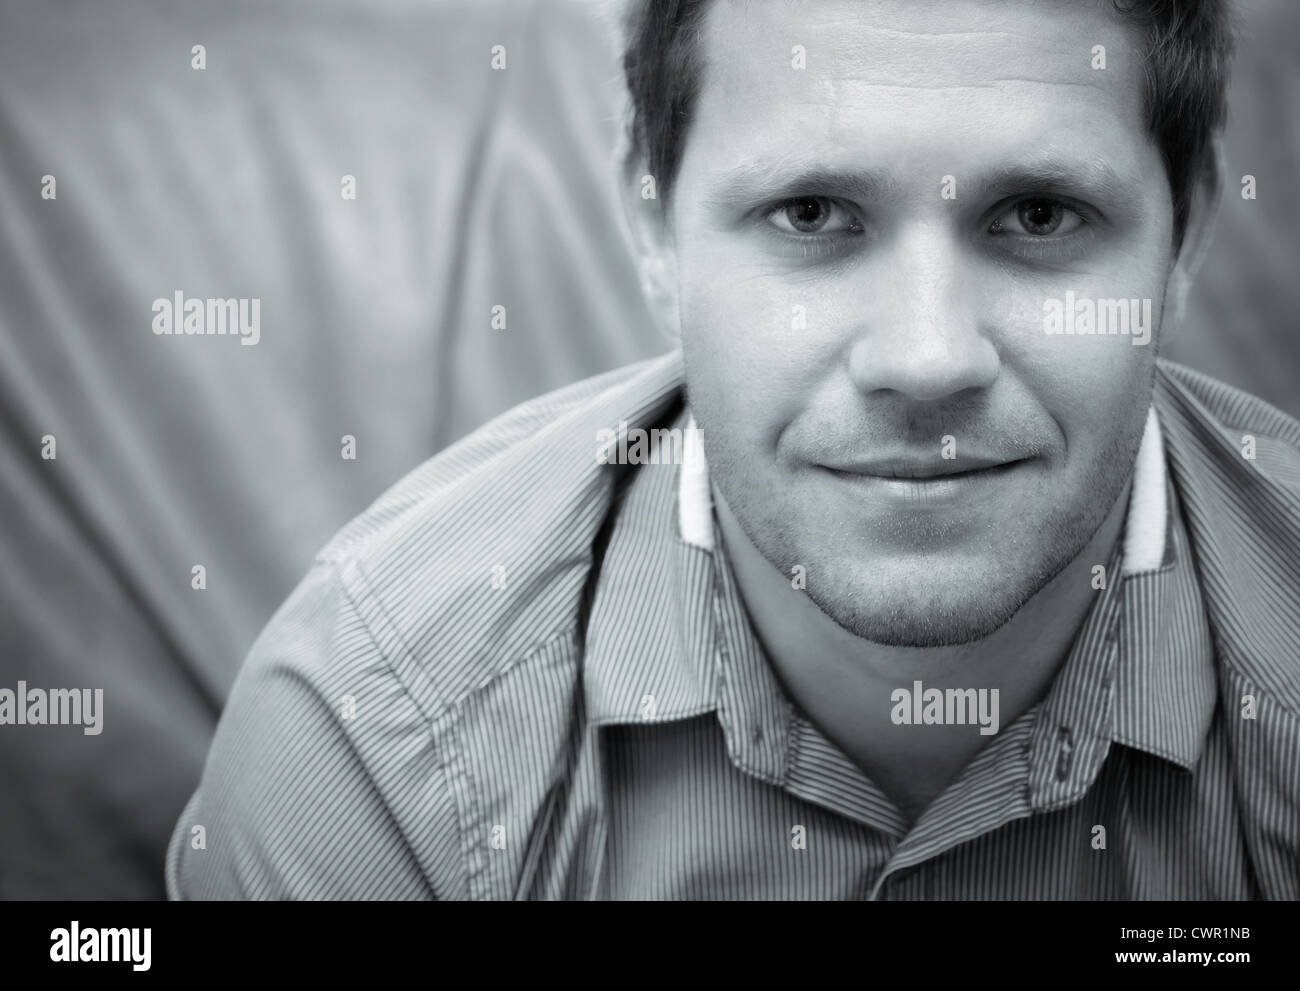 Close up of a businessman avec un visage confiant et optimiste Photo Stock